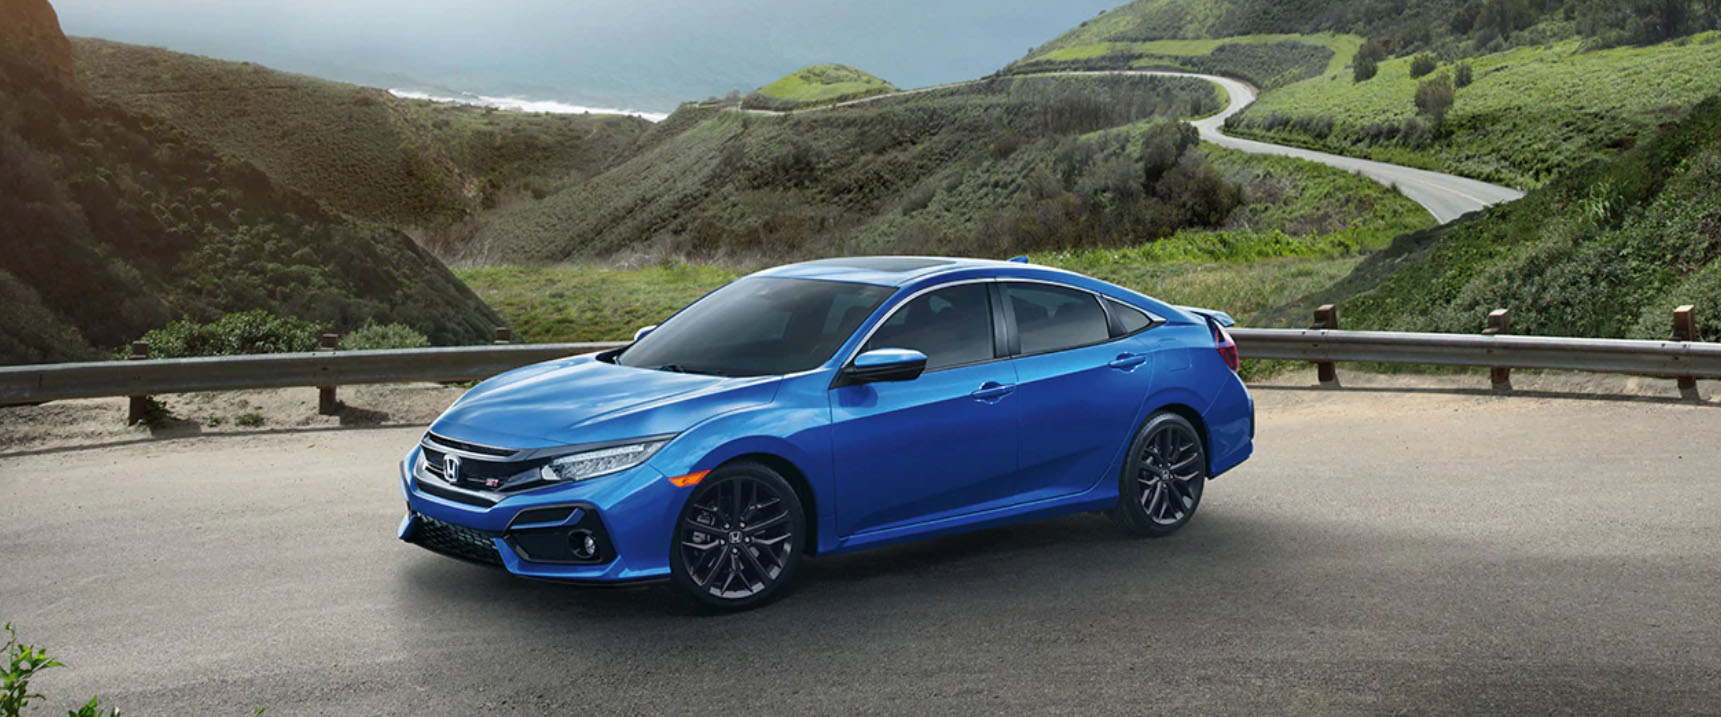 2020 Honda Civic Si Sedan Safety Main Img